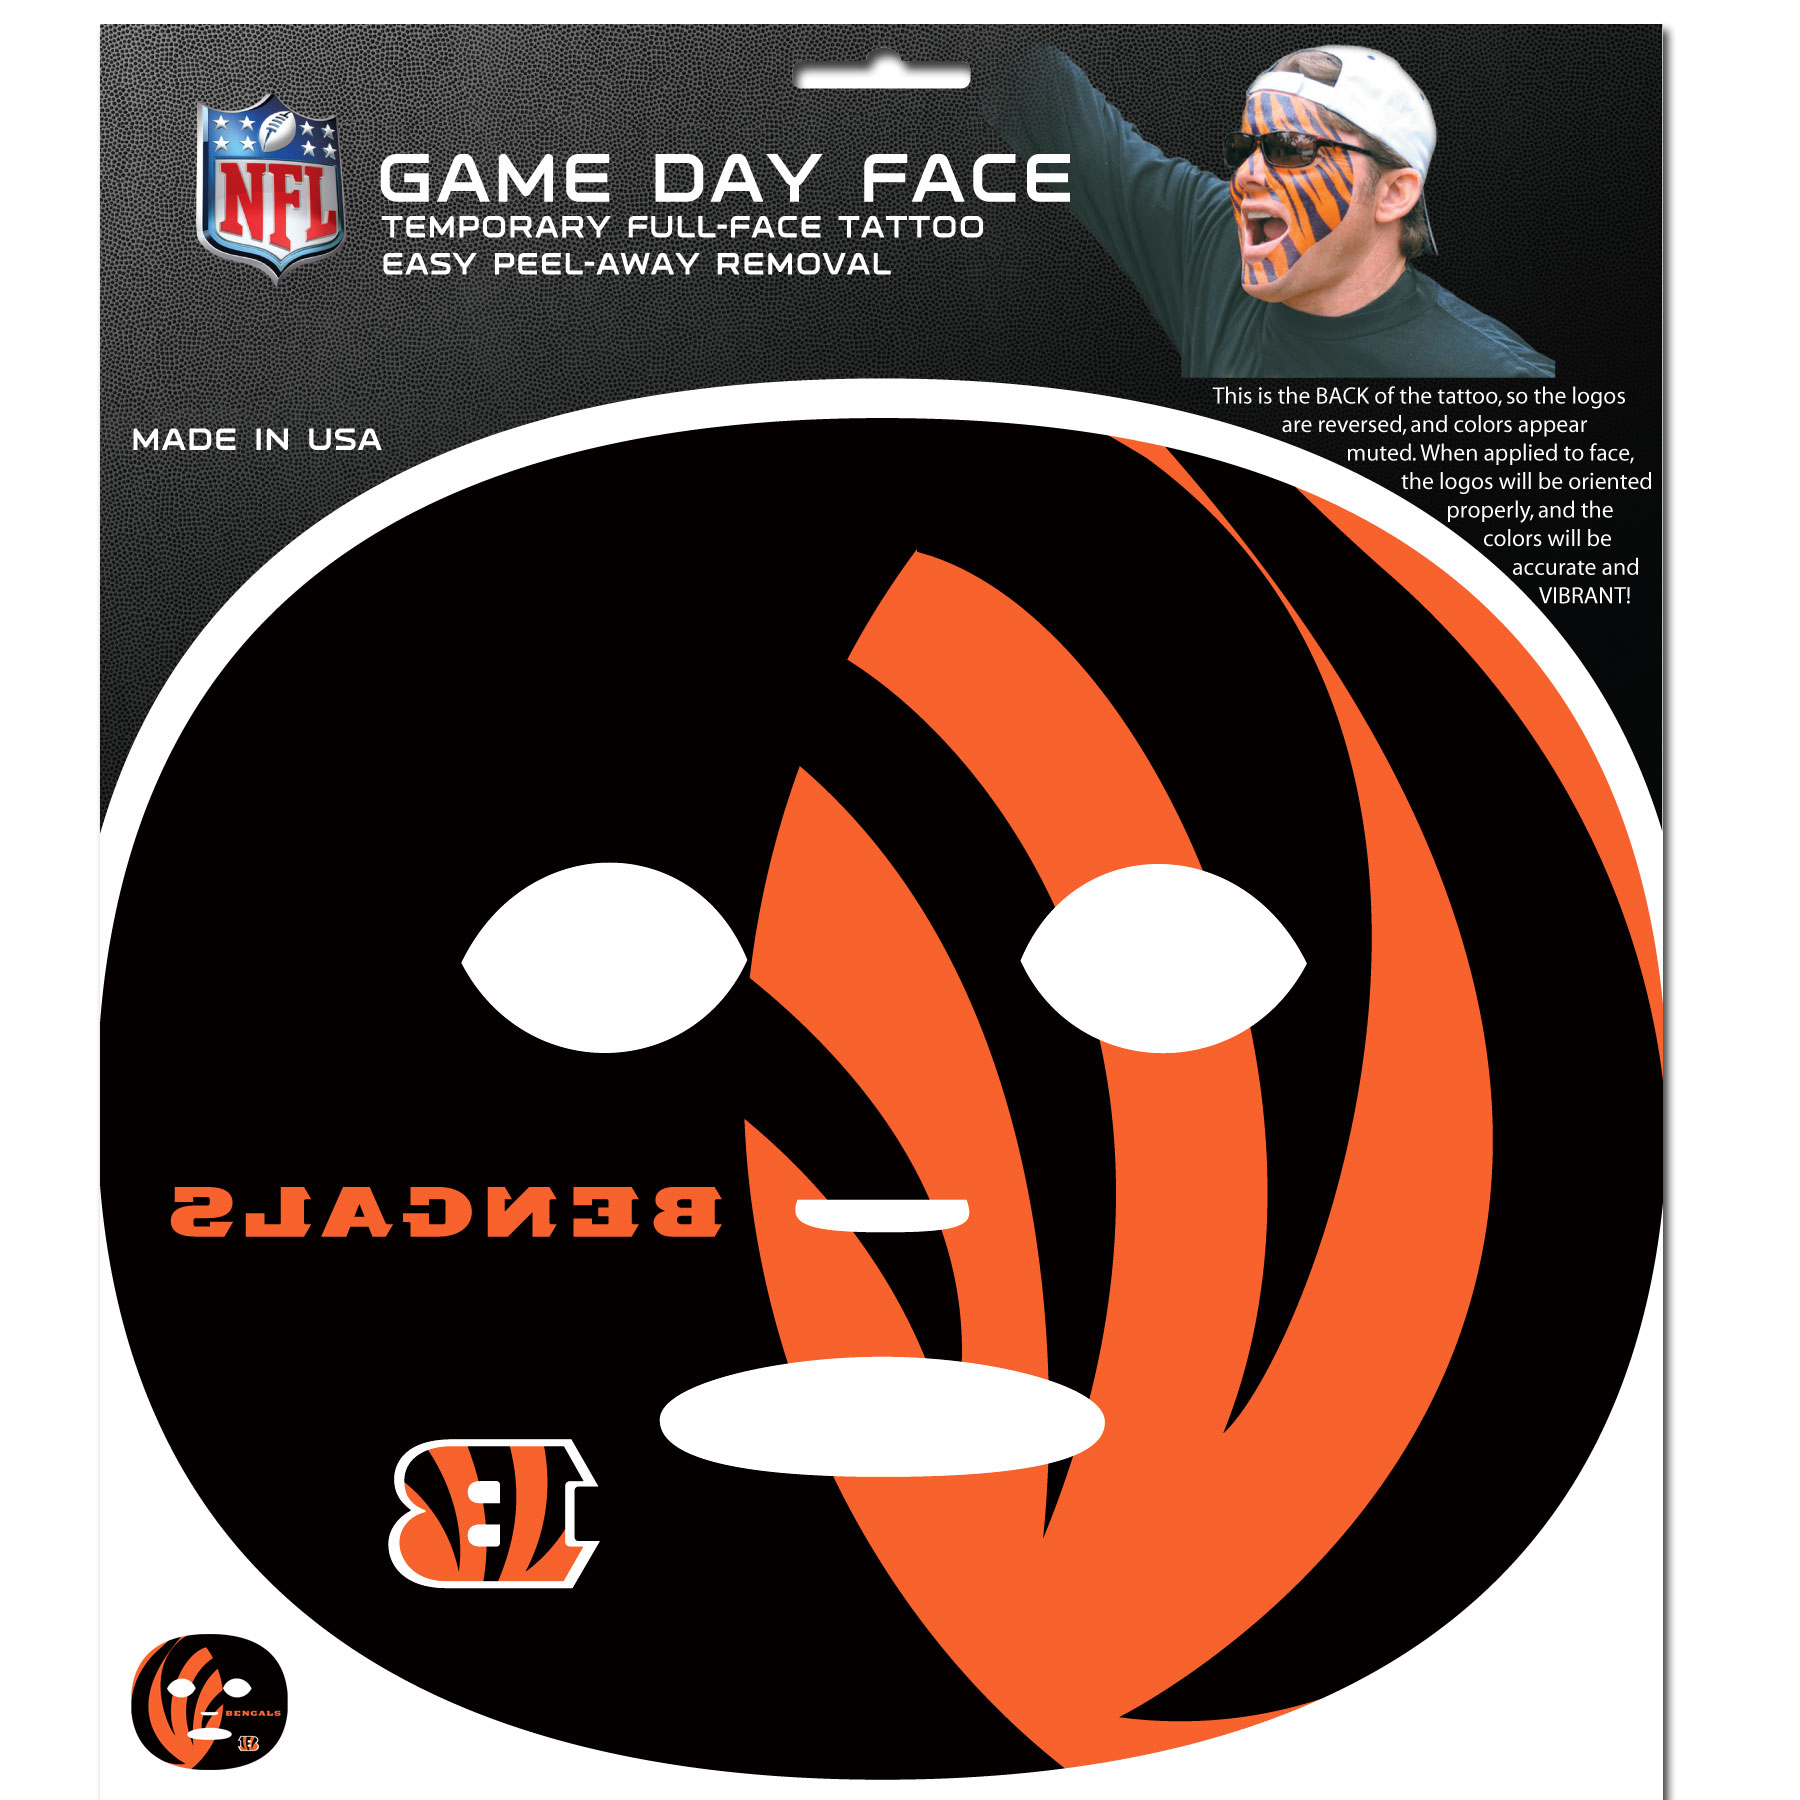 Cincinnati Bengals Set of 8 Game Day Faces - No better way to show your team pride than by painting your face. Siskiyou's Game Day Face Temporary Tattoo isn't your typical face paint. It is a water based application that doesn't smudge, smear or sweat off while you're wearing it and easily peels off after you're done celebrating your team's big Win! The temporary tattoo is large enough to trim down to fit your face. Our Game Day Face Temporary Tattoo's are fun for fans of all ages. You may have seen our product before, these are the same Temporary Face Tattoos as pitched on ABC's Shark Tank.